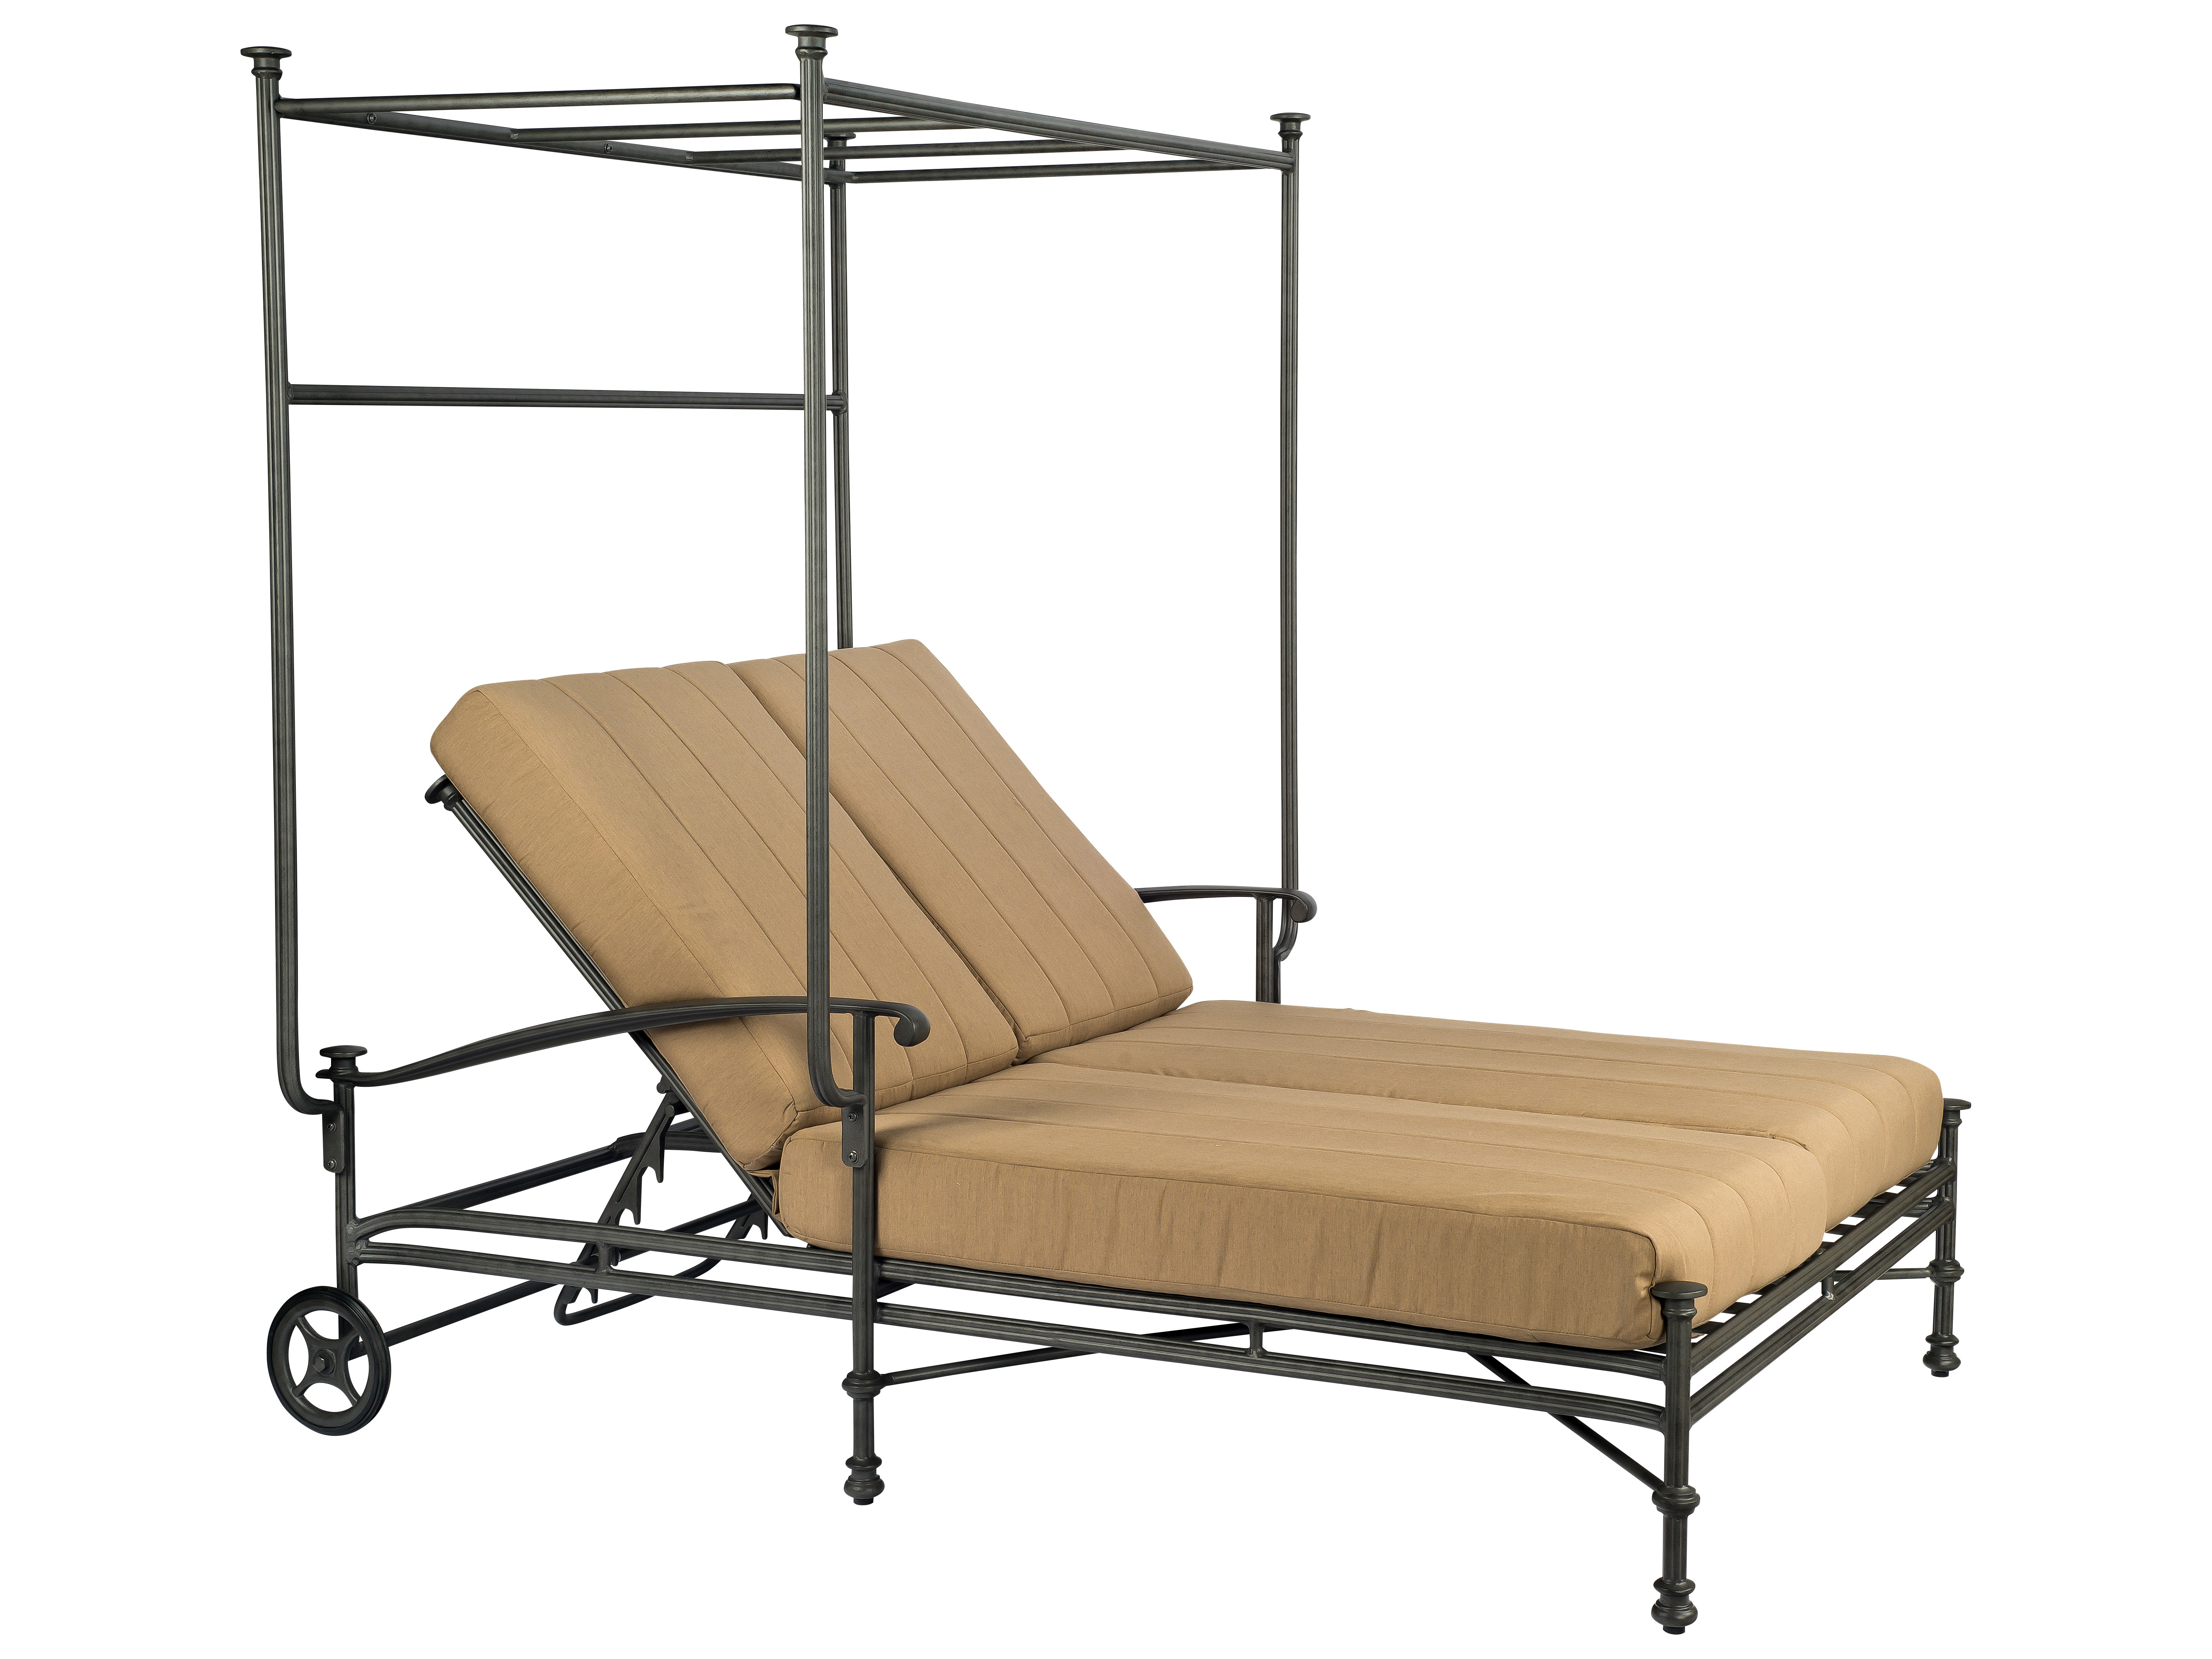 Woodard nova cast aluminum double chaise with canopy 1v0770 for Chaise lounge canopy